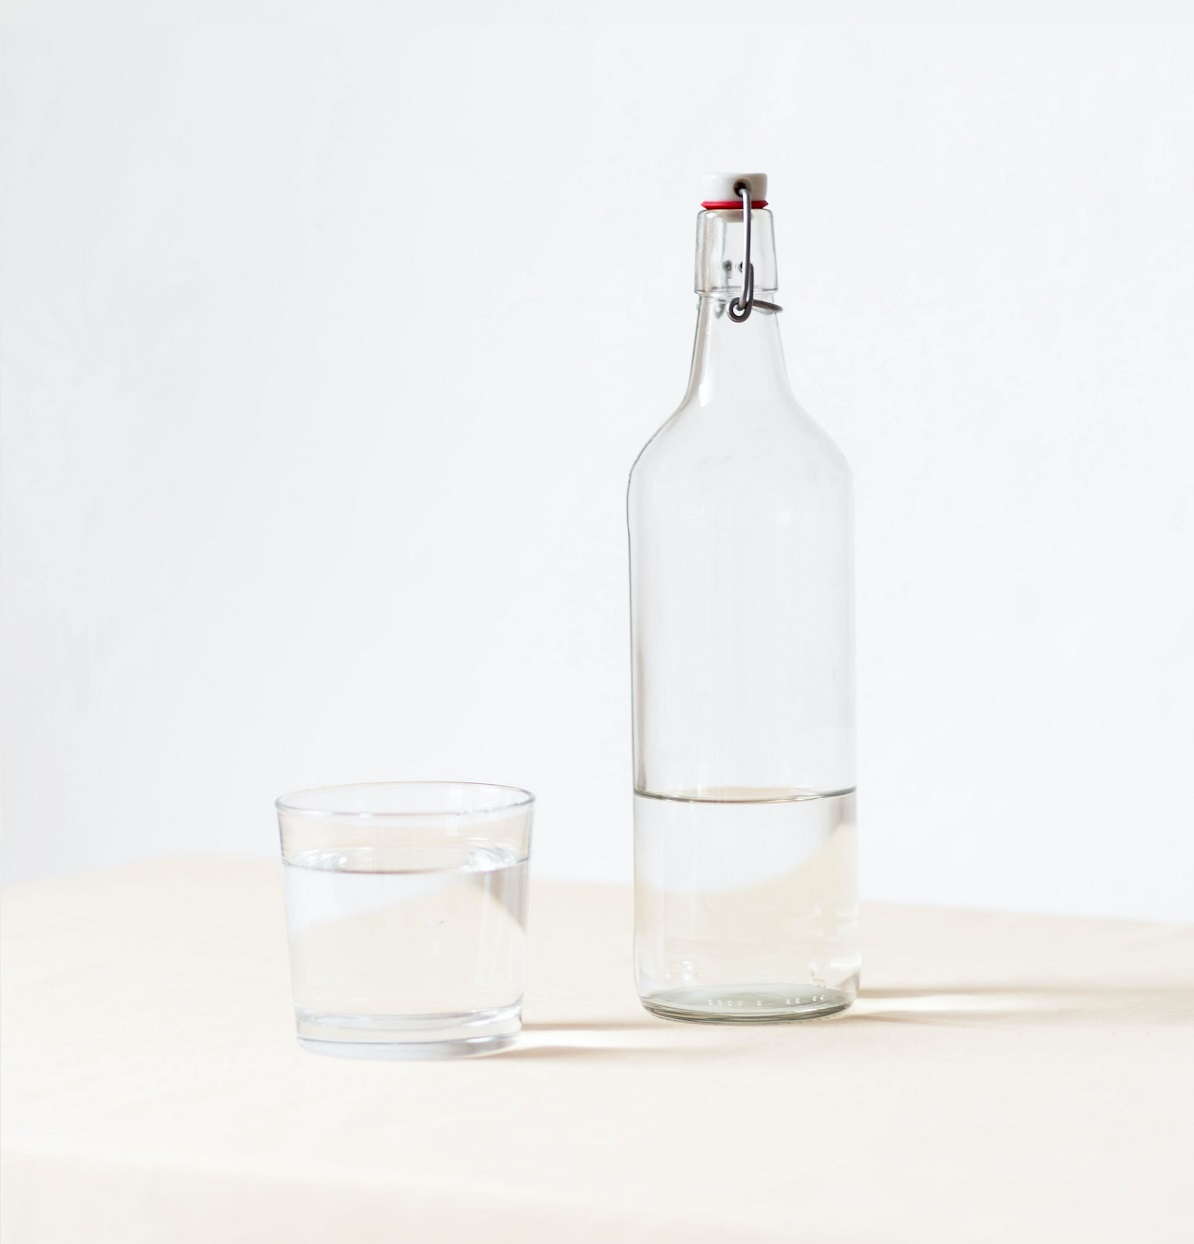 water-bottle-glass